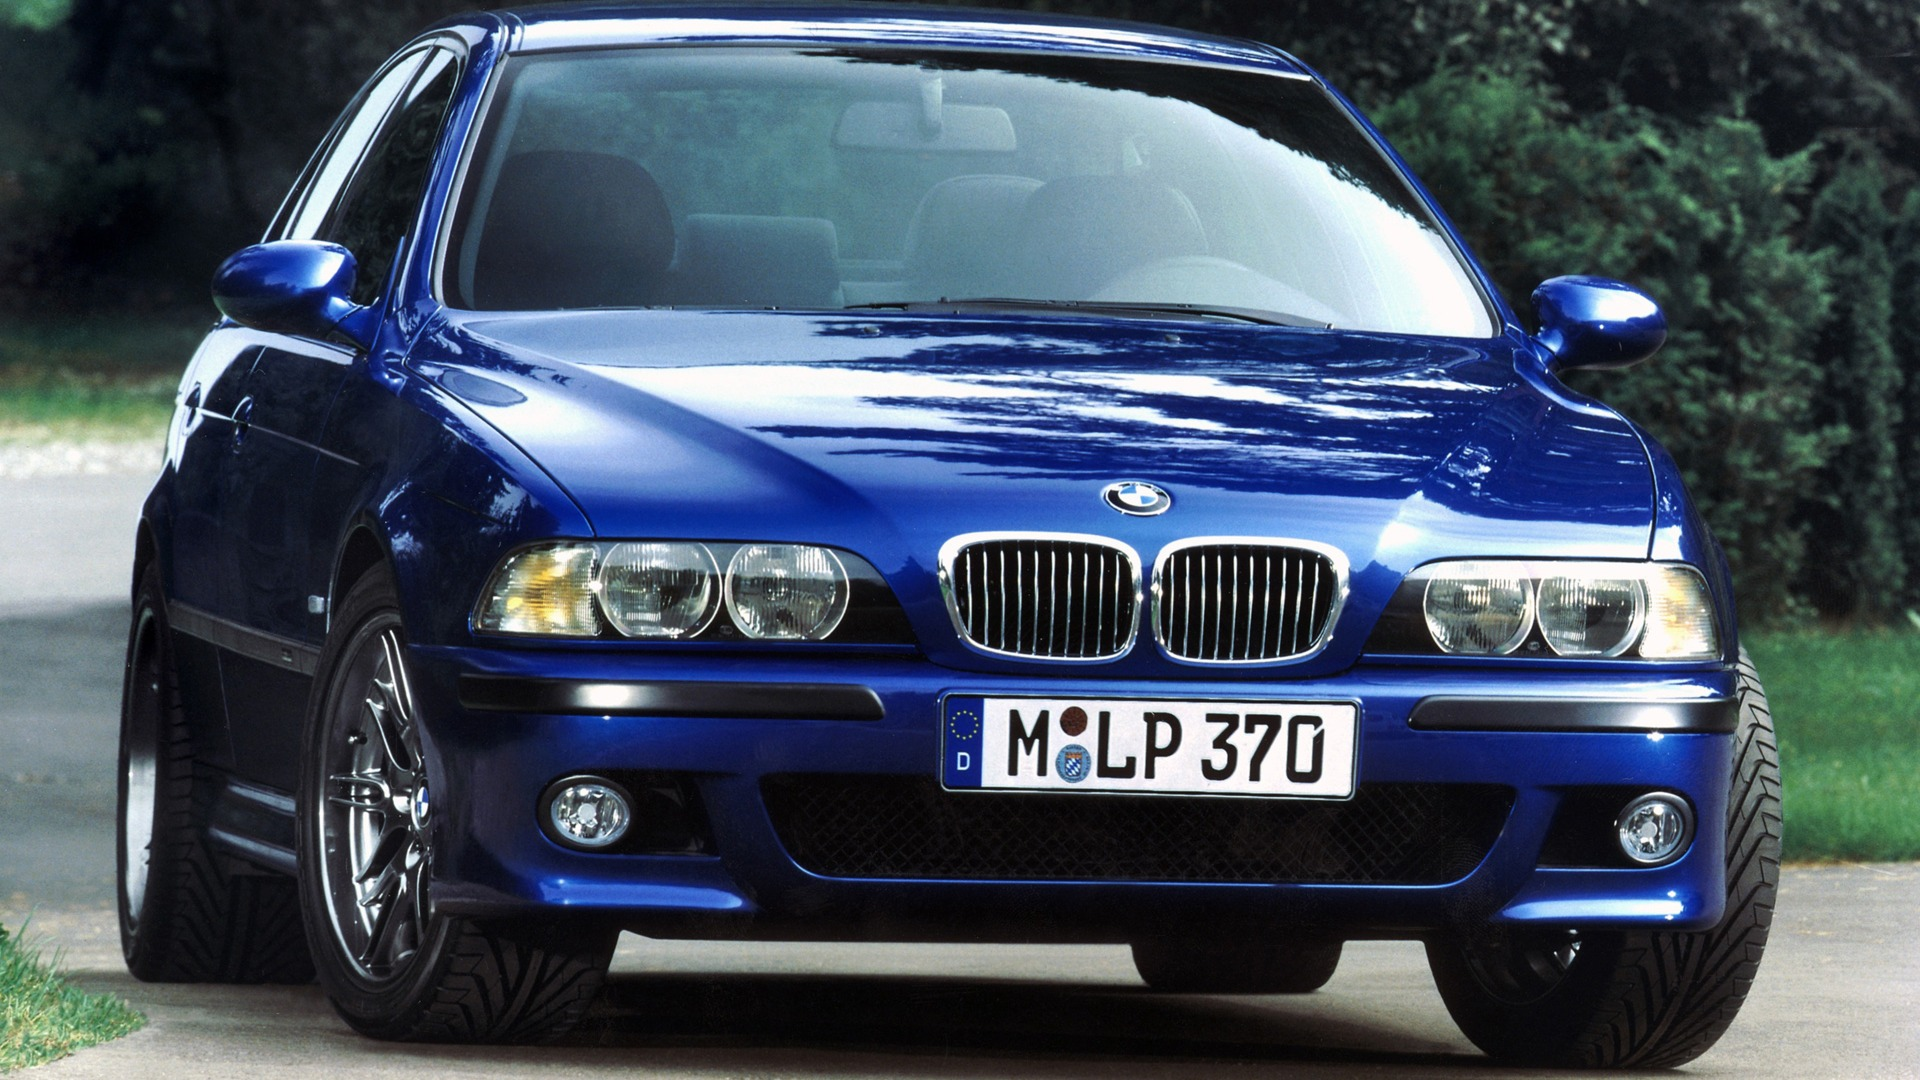 Bmw M5 E39 Hd Wallpaper 1 1920x1080 Wallpaper Download